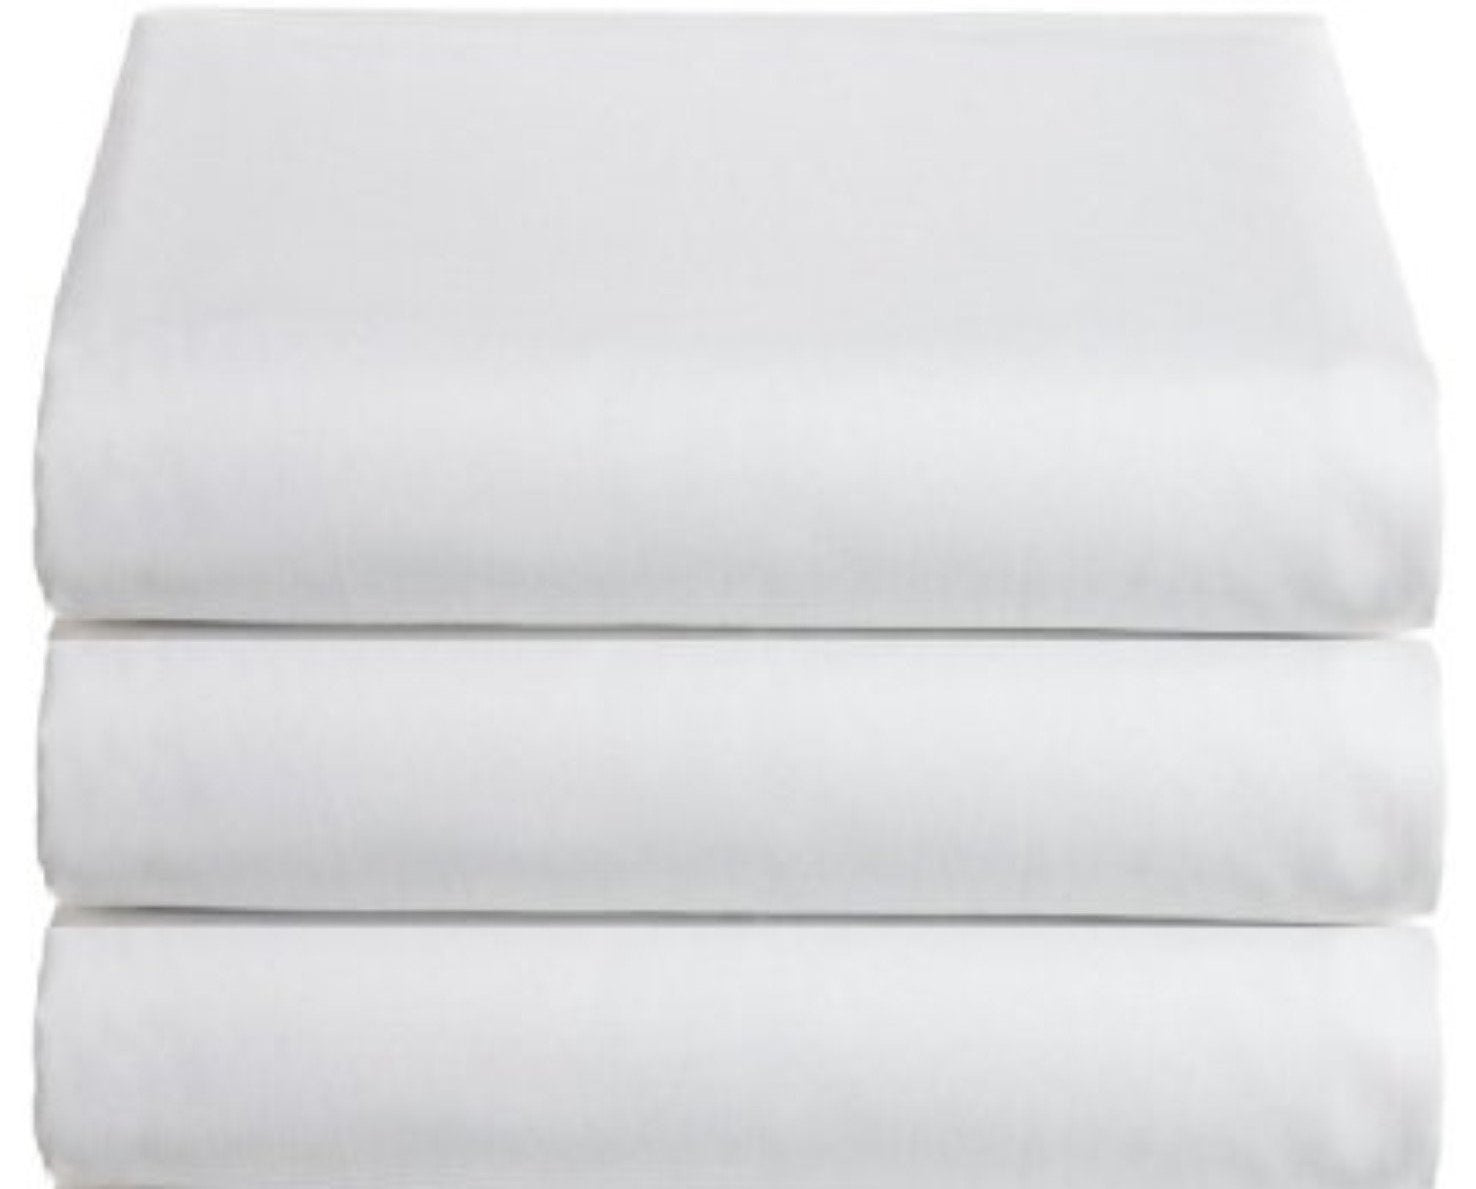 Luxury Egyptian Cotton Sheet Set Double Size White 400 Tc